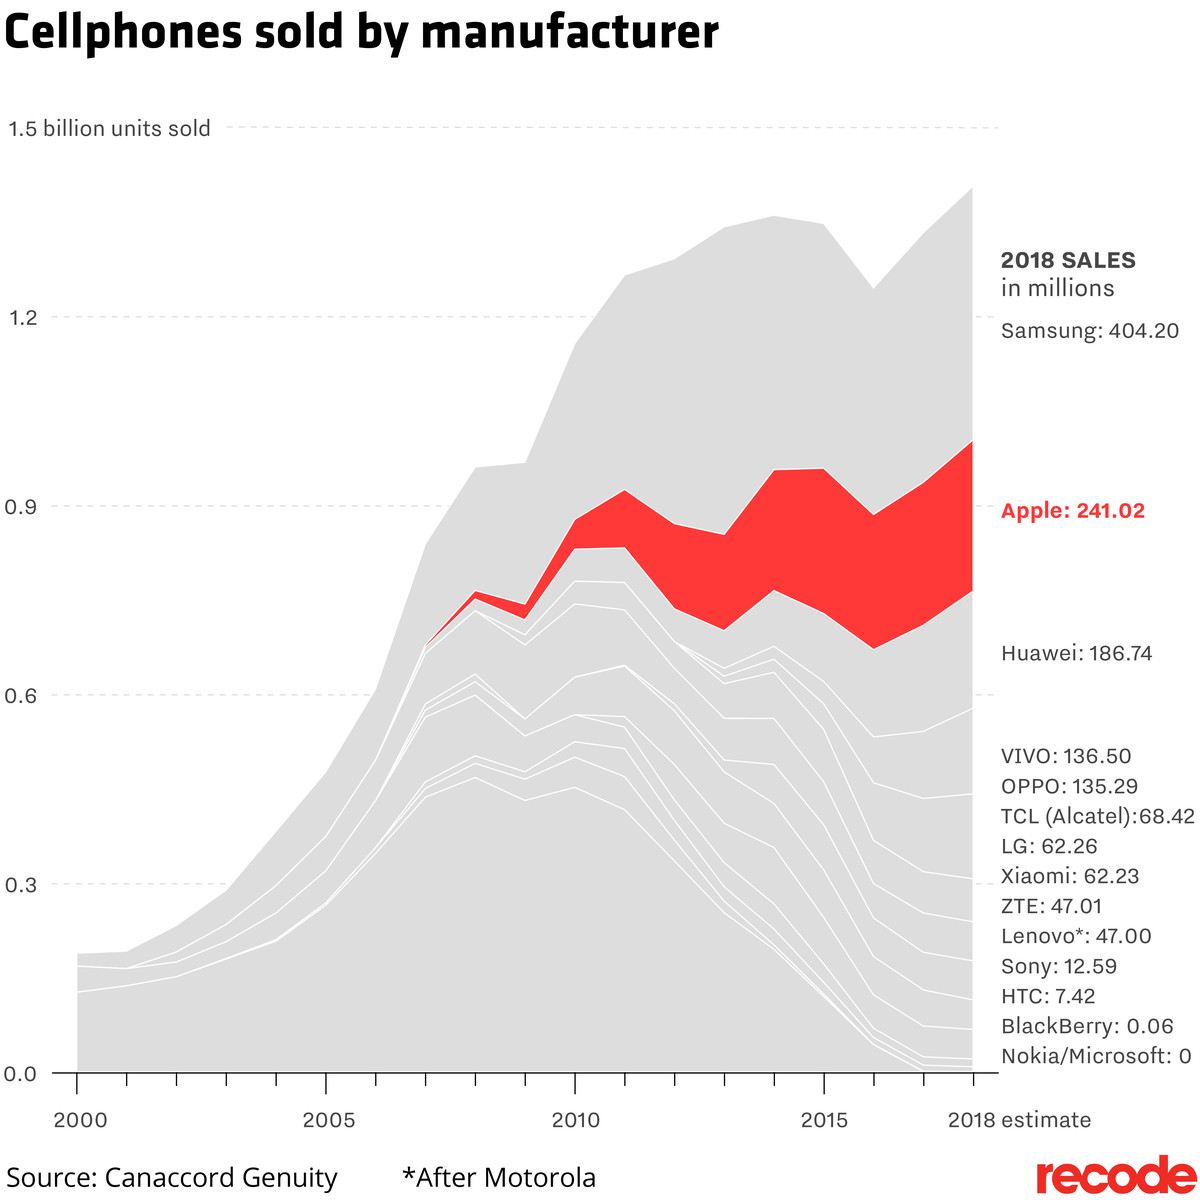 Cellphones sold by manufacturer